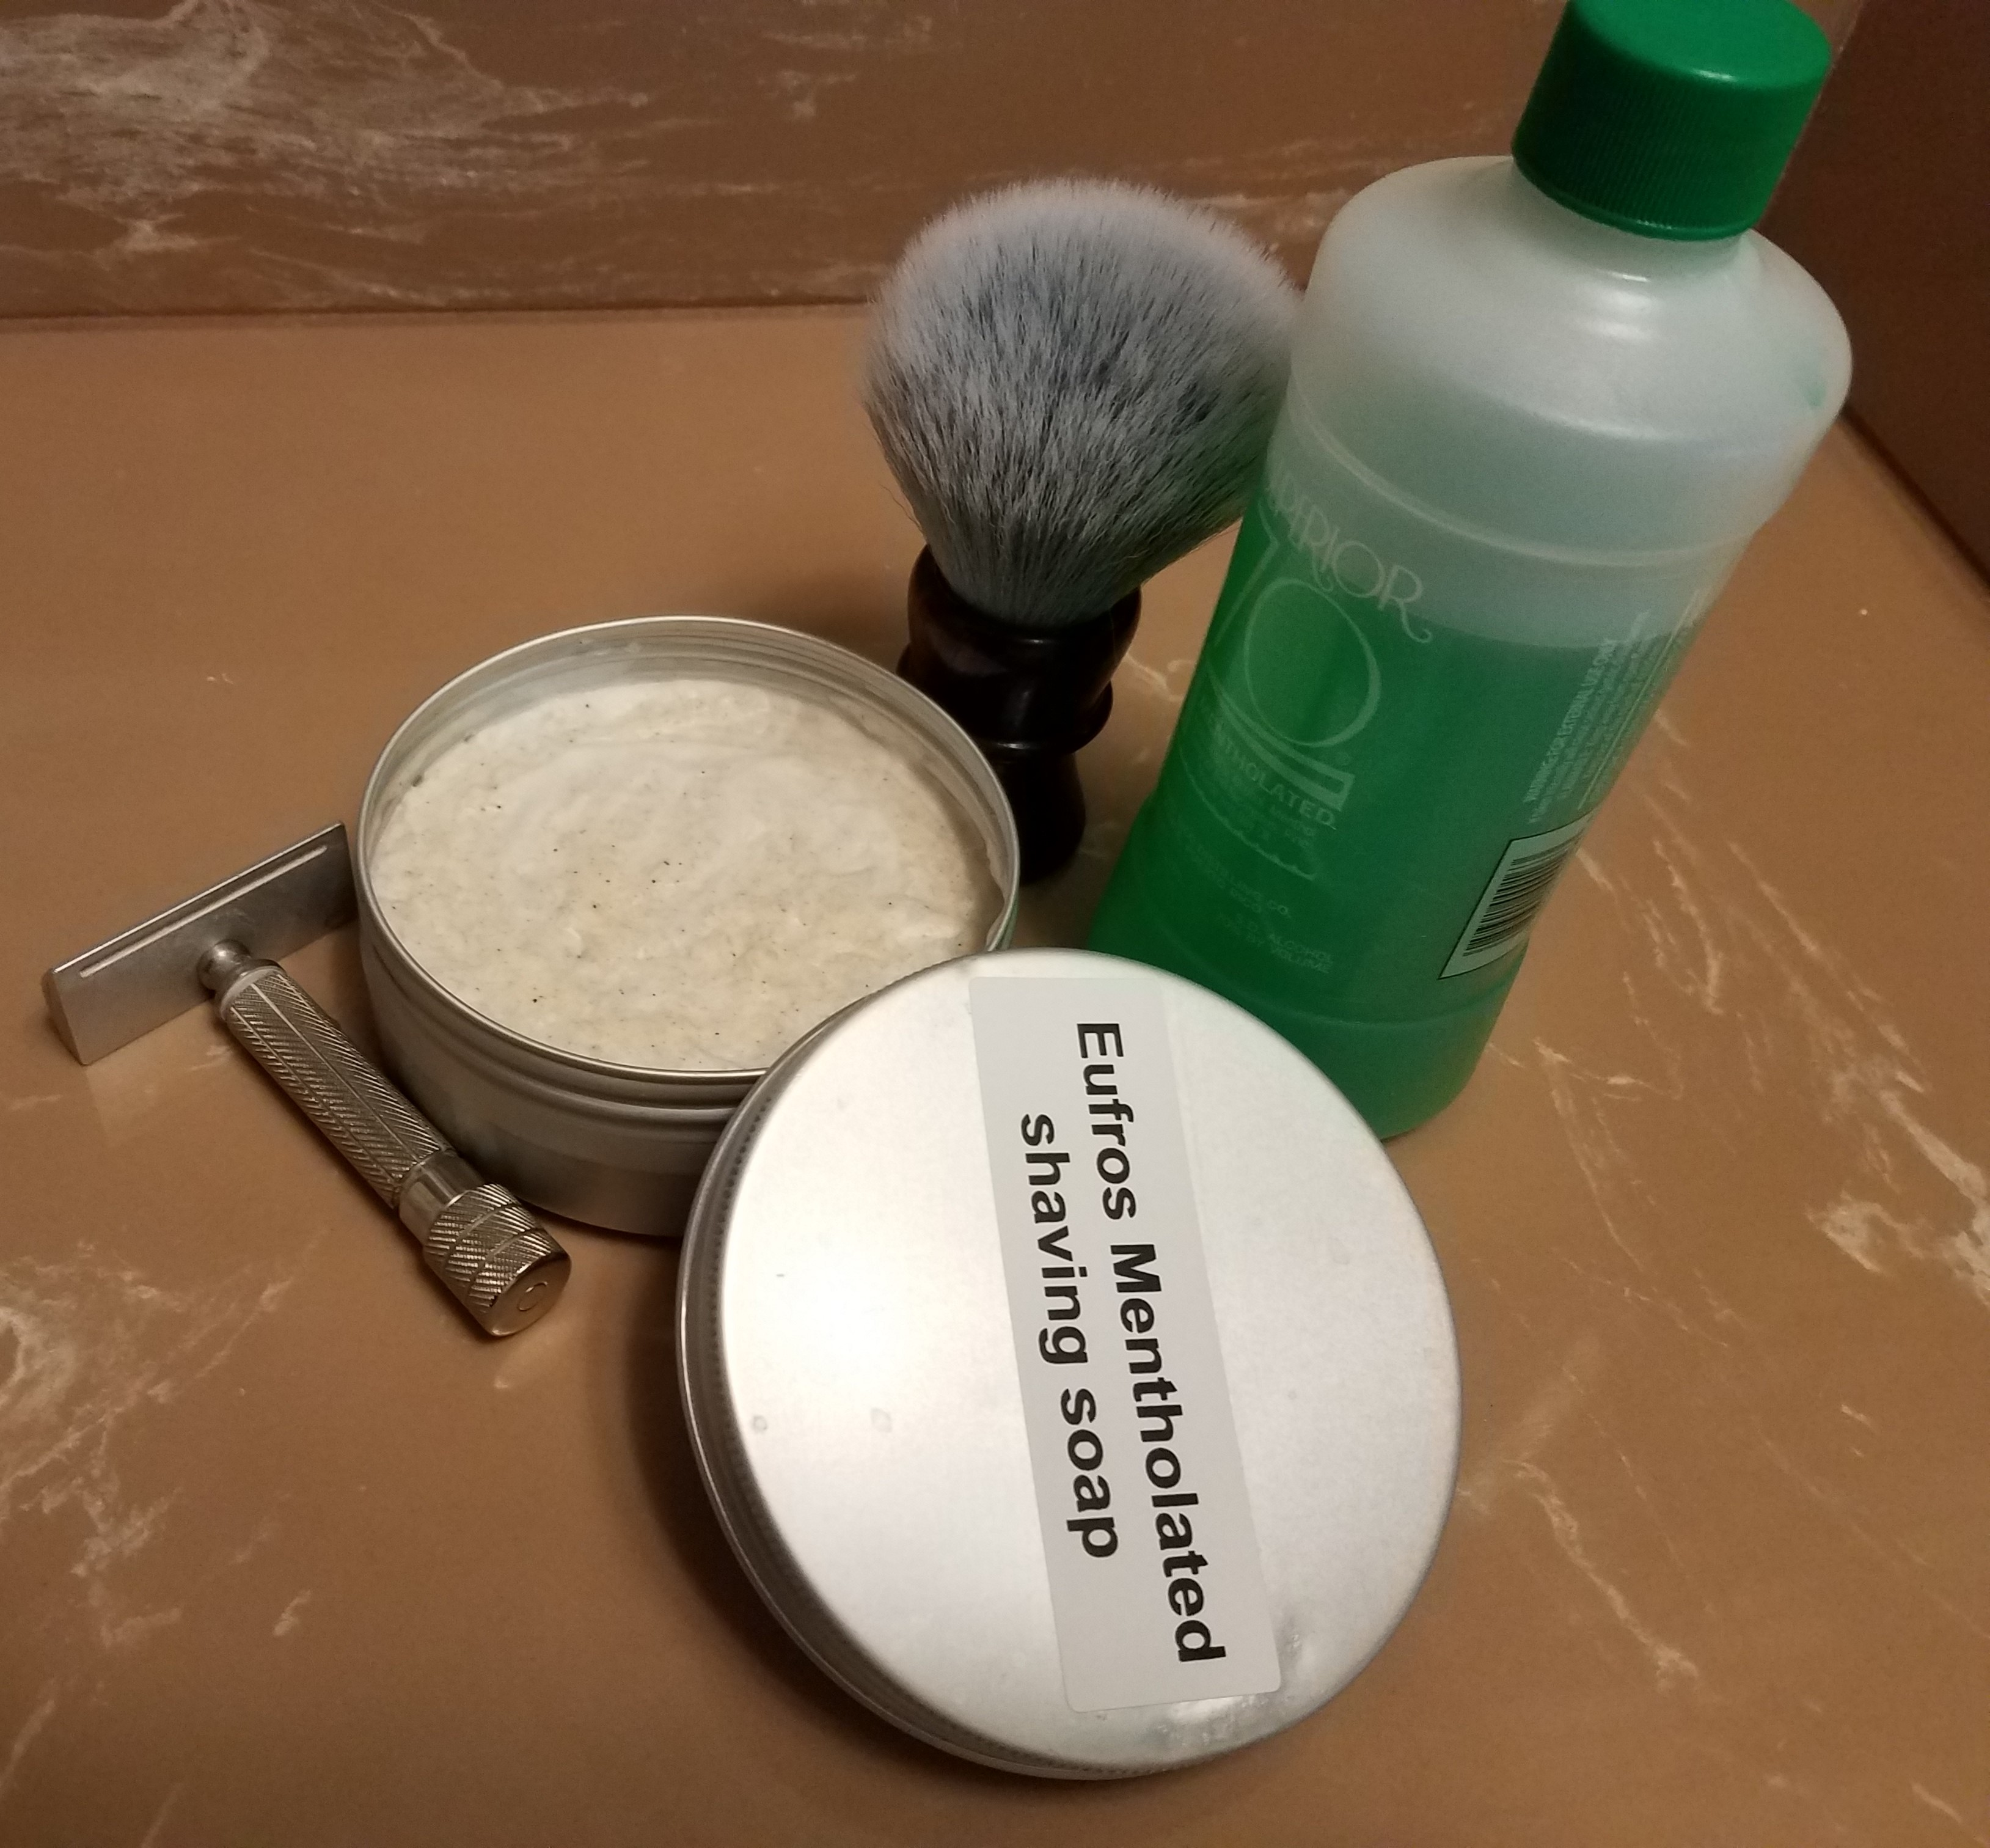 SOTD Eufros Mentholated 20Aug2018.jpg